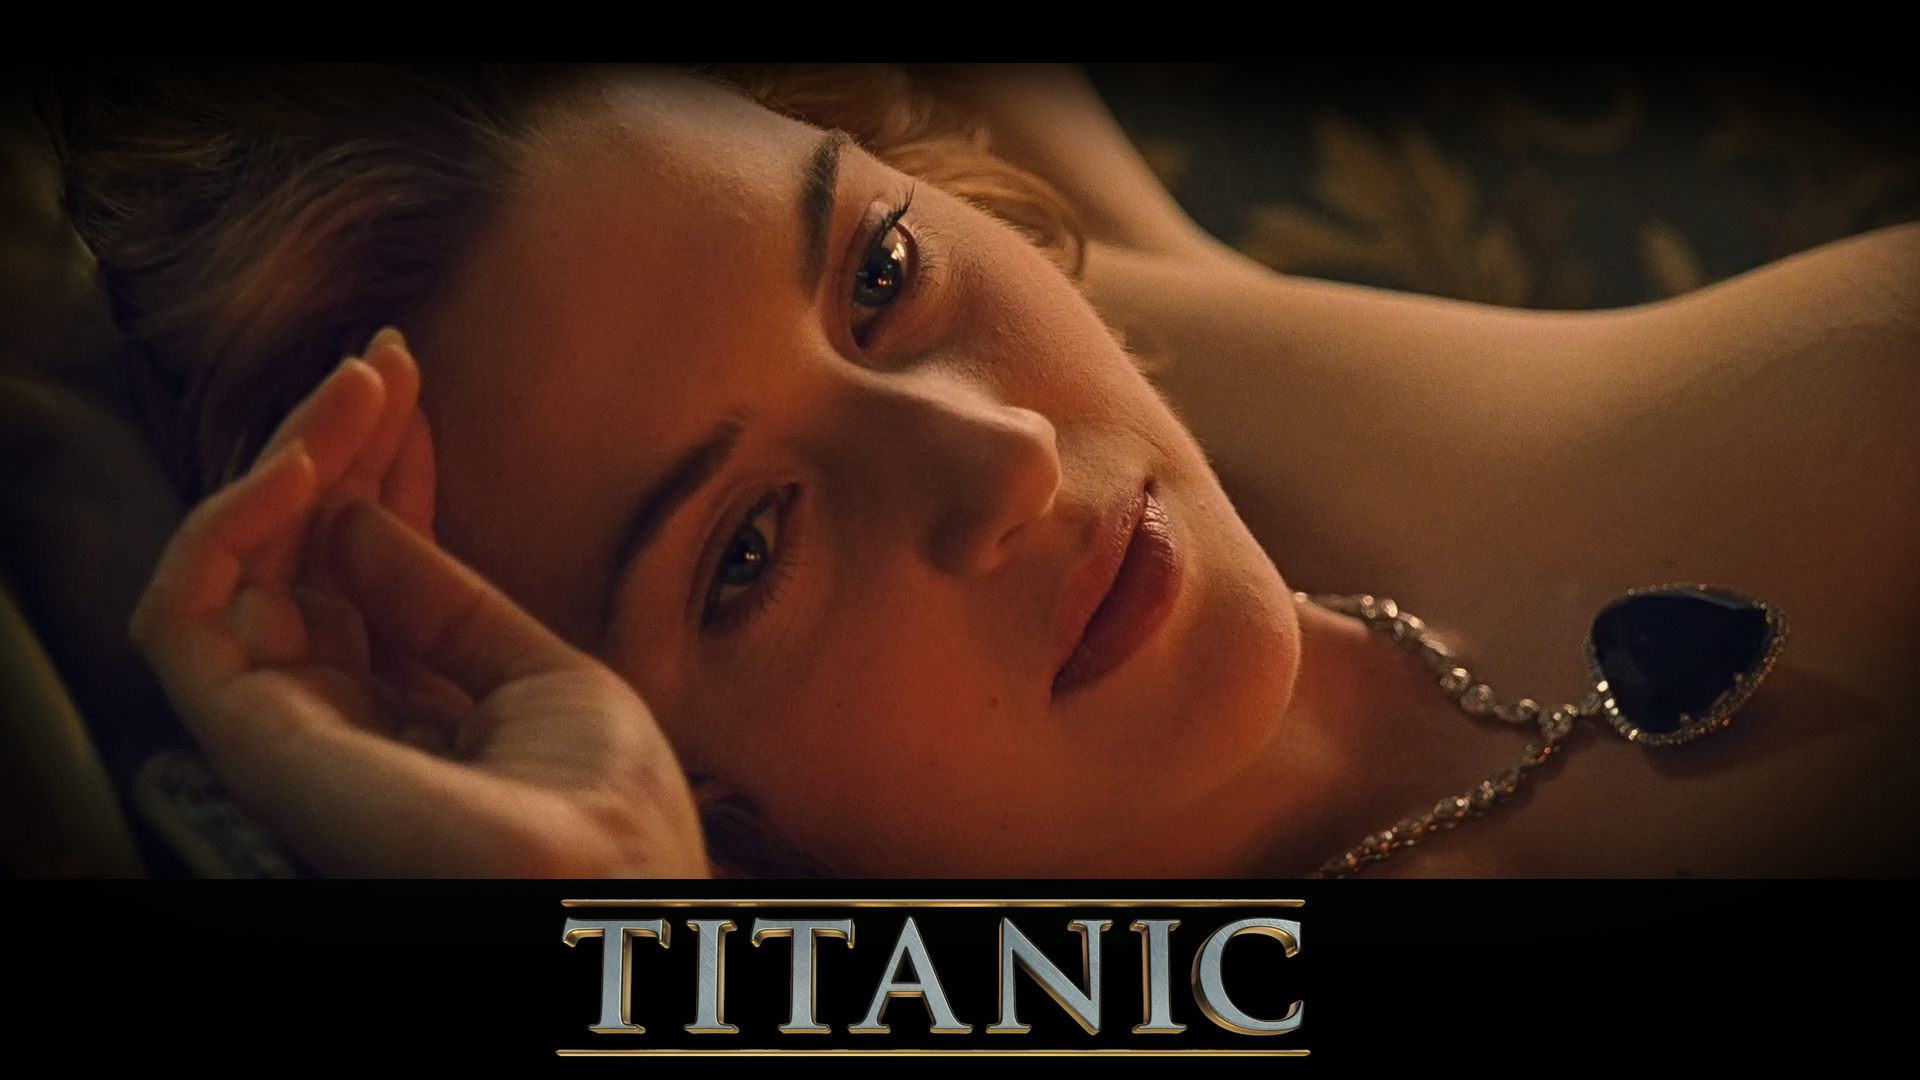 Titanic 3D wallpaper 5